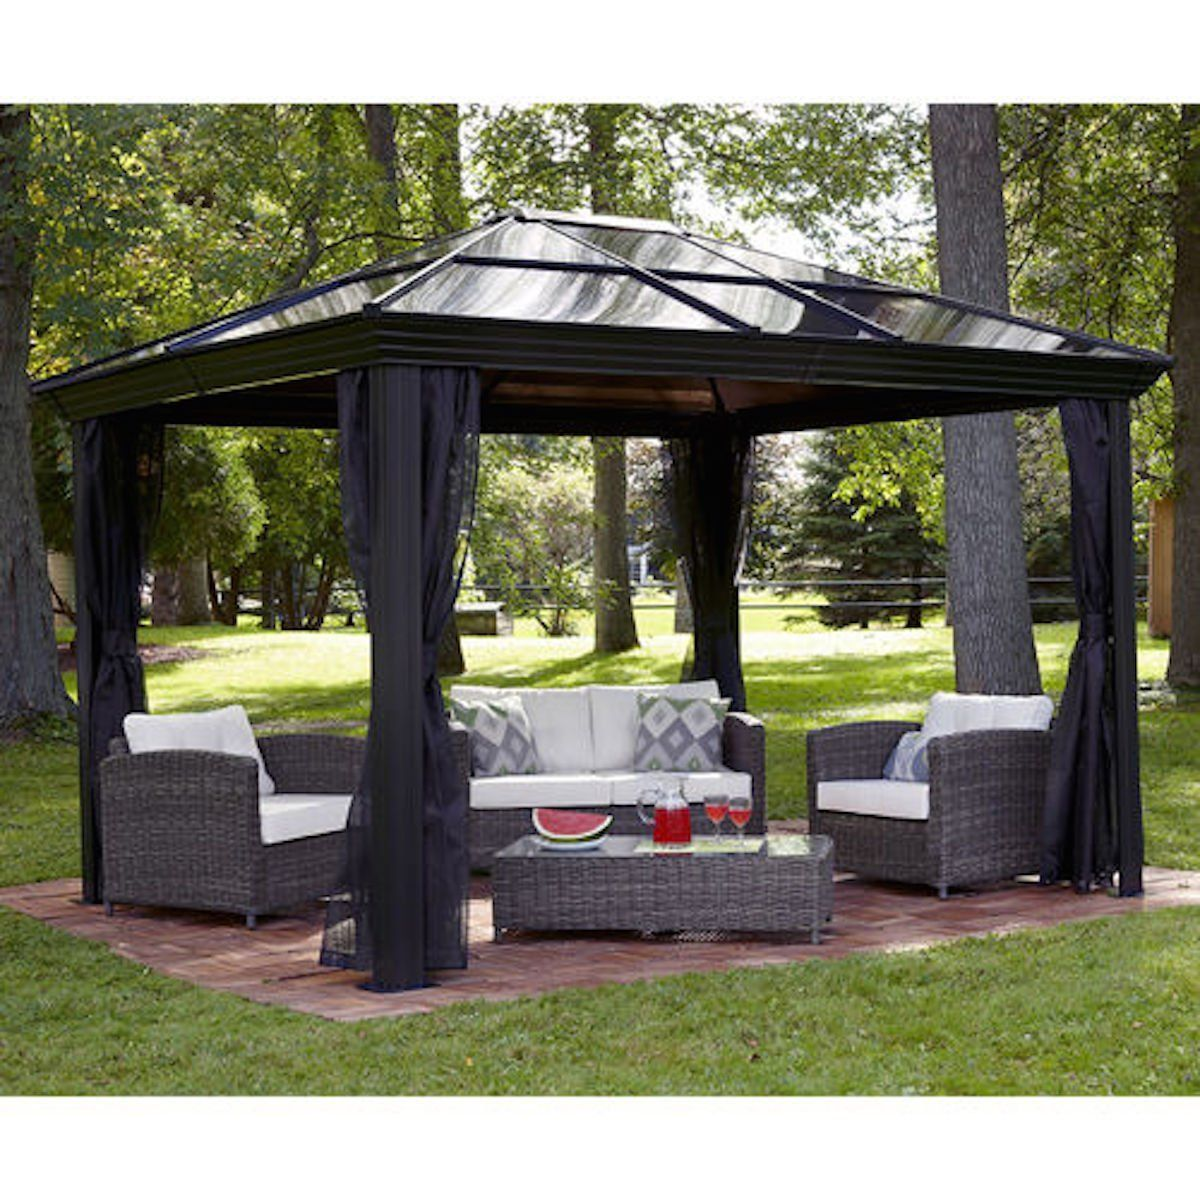 Gazebo Canopy Pergola This 10 X 12 Hardtop Gazebo Tent Has A Metal Gazebo Frame And Durable Polycarbonate Roof The Gazebo Tent Backyard Gazebo Patio Canopy